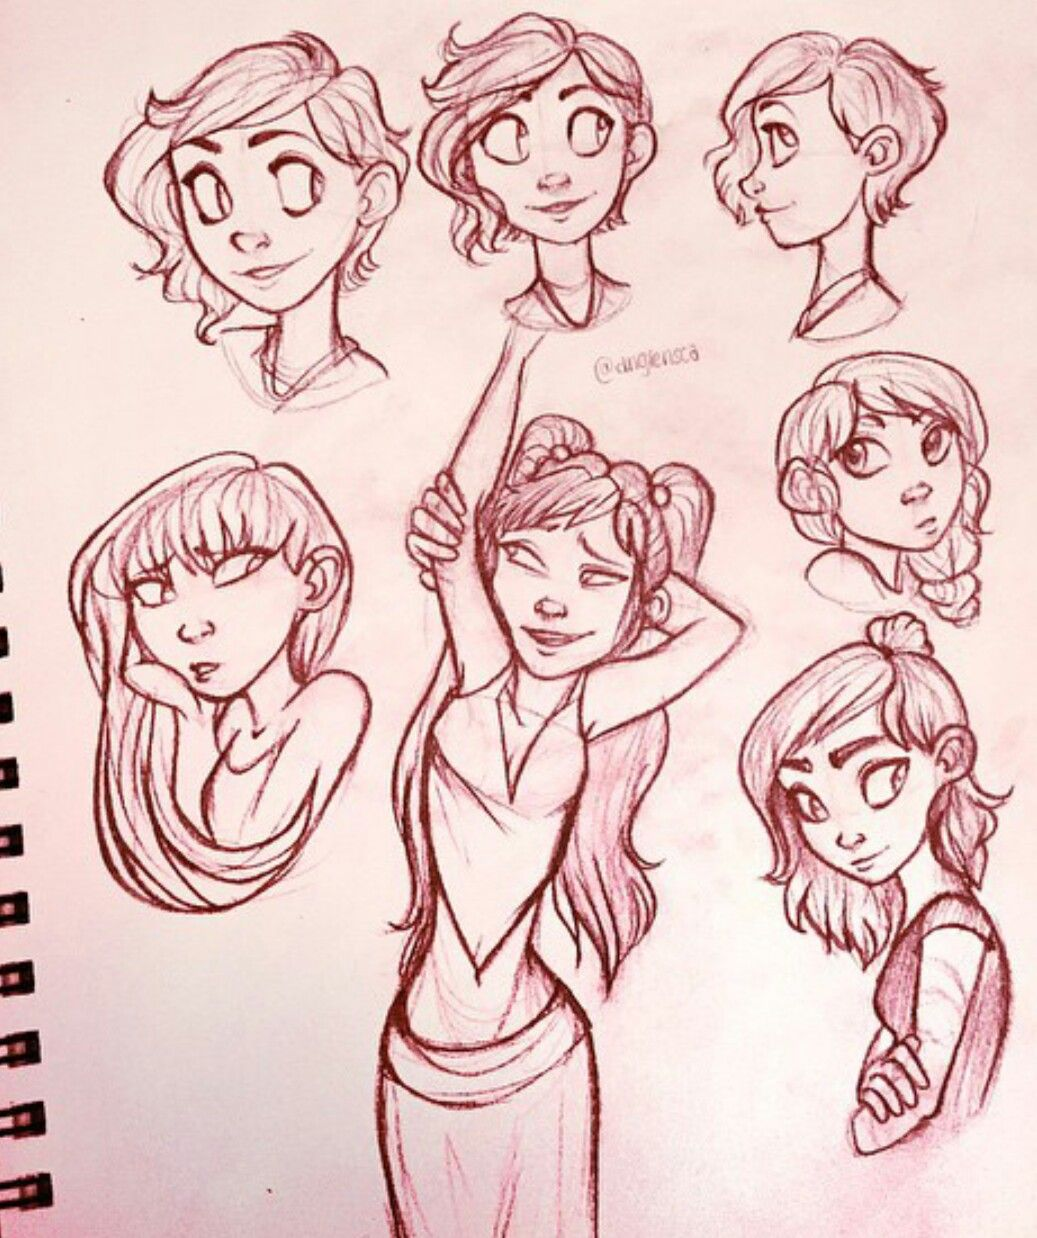 Comic Character Design Tutorial : Pin by sydni mottley on realistic art goals pinterest